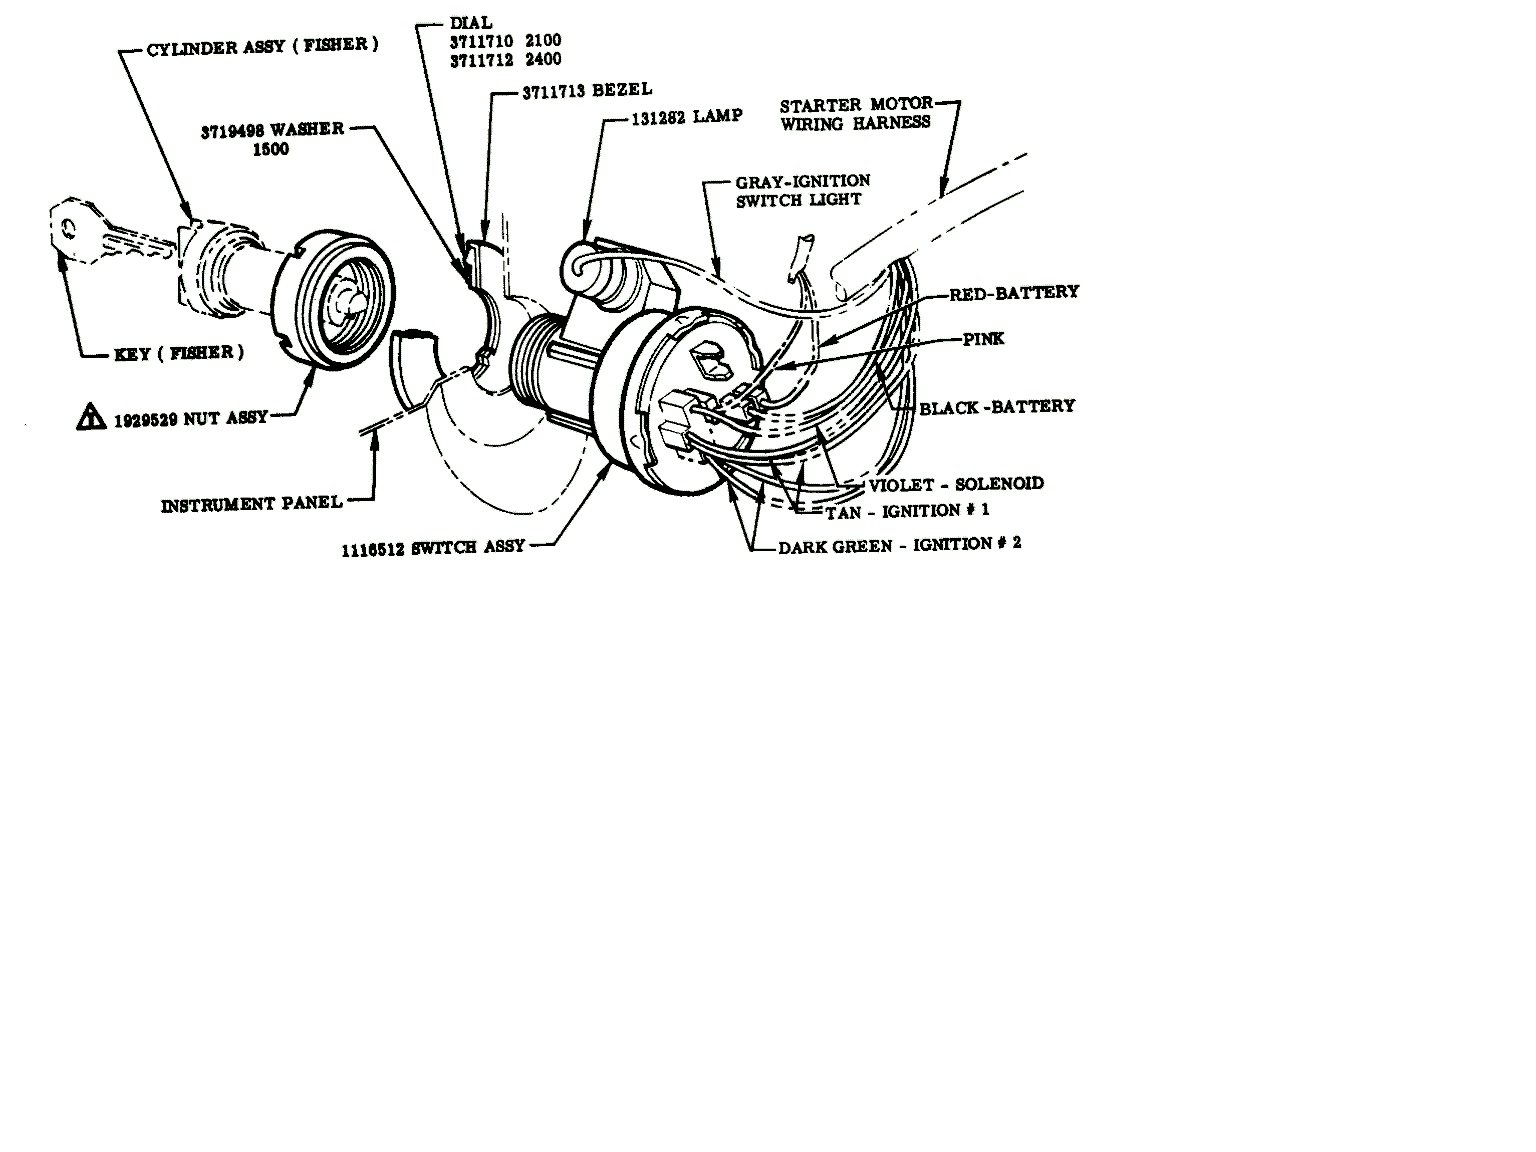 55 chevy ignition switch wiring